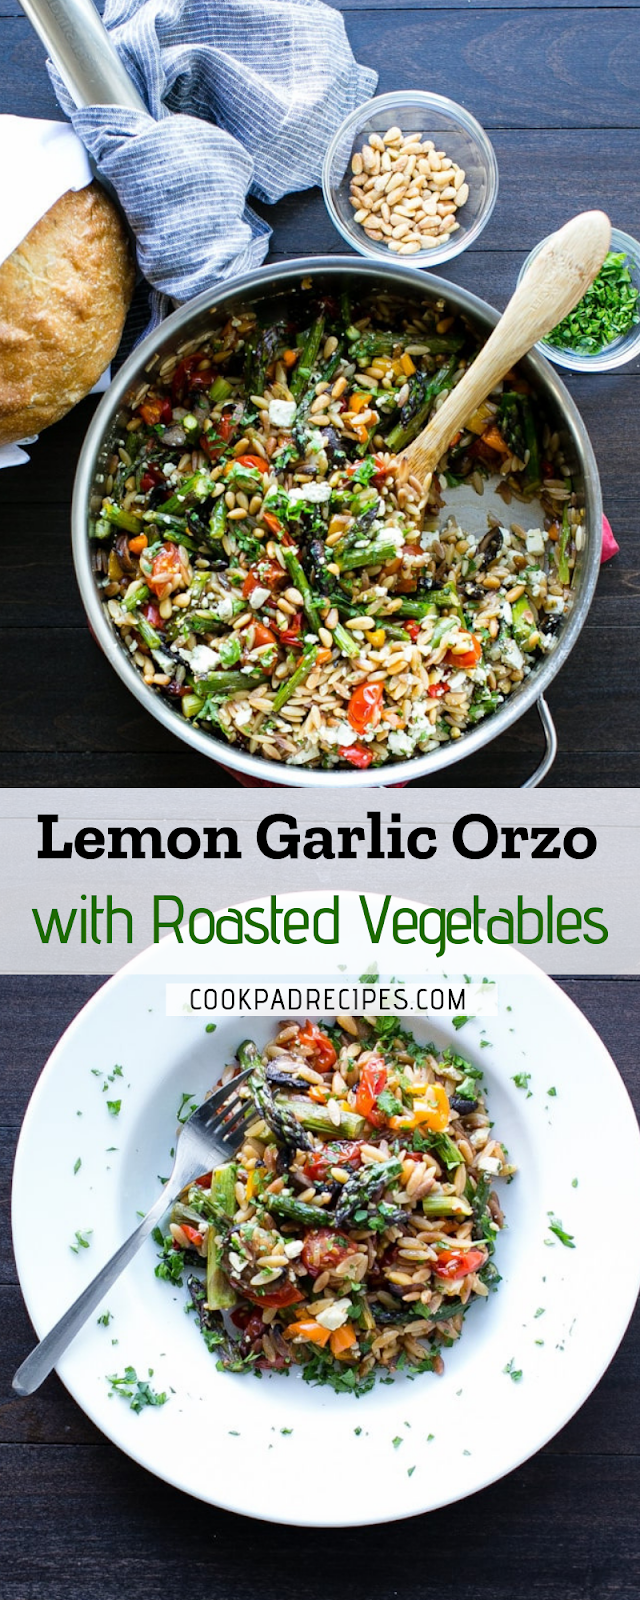 Lemon Gаrlіс Orzo wіth Roasted Vegetables